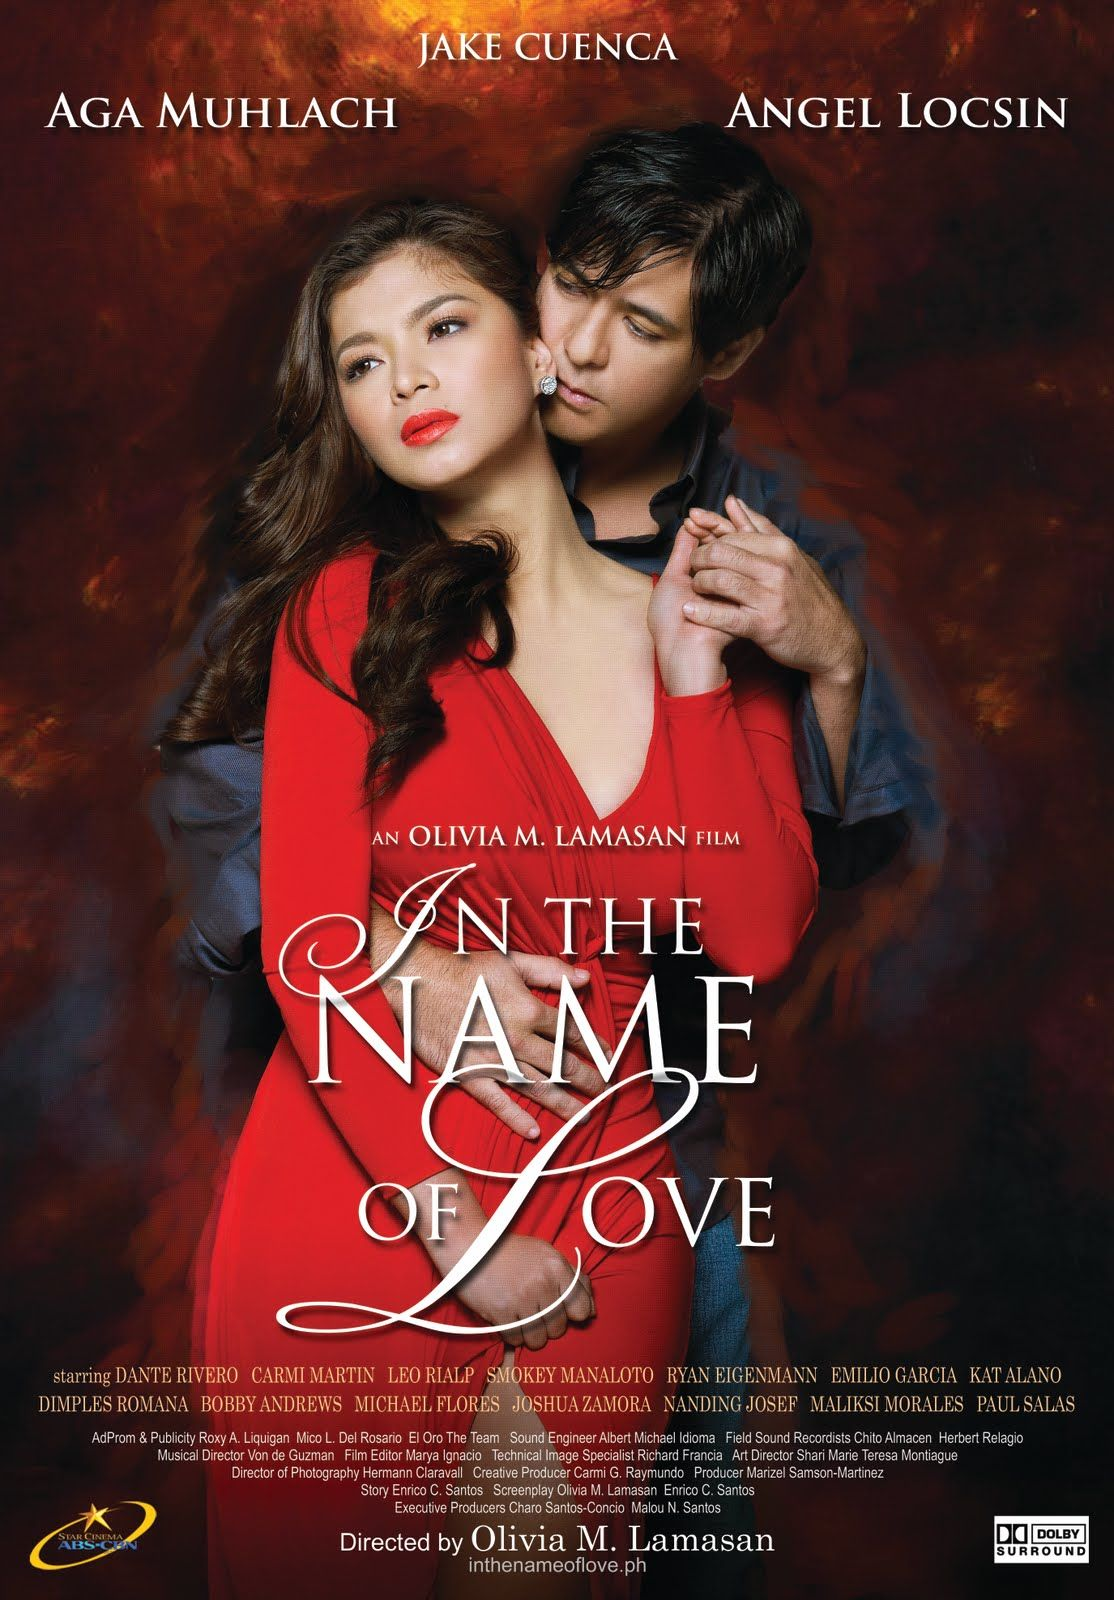 In The Name Of Love Official One Sheet 2012 Pinoy Movies Full Movies Online Free Free Movies Online